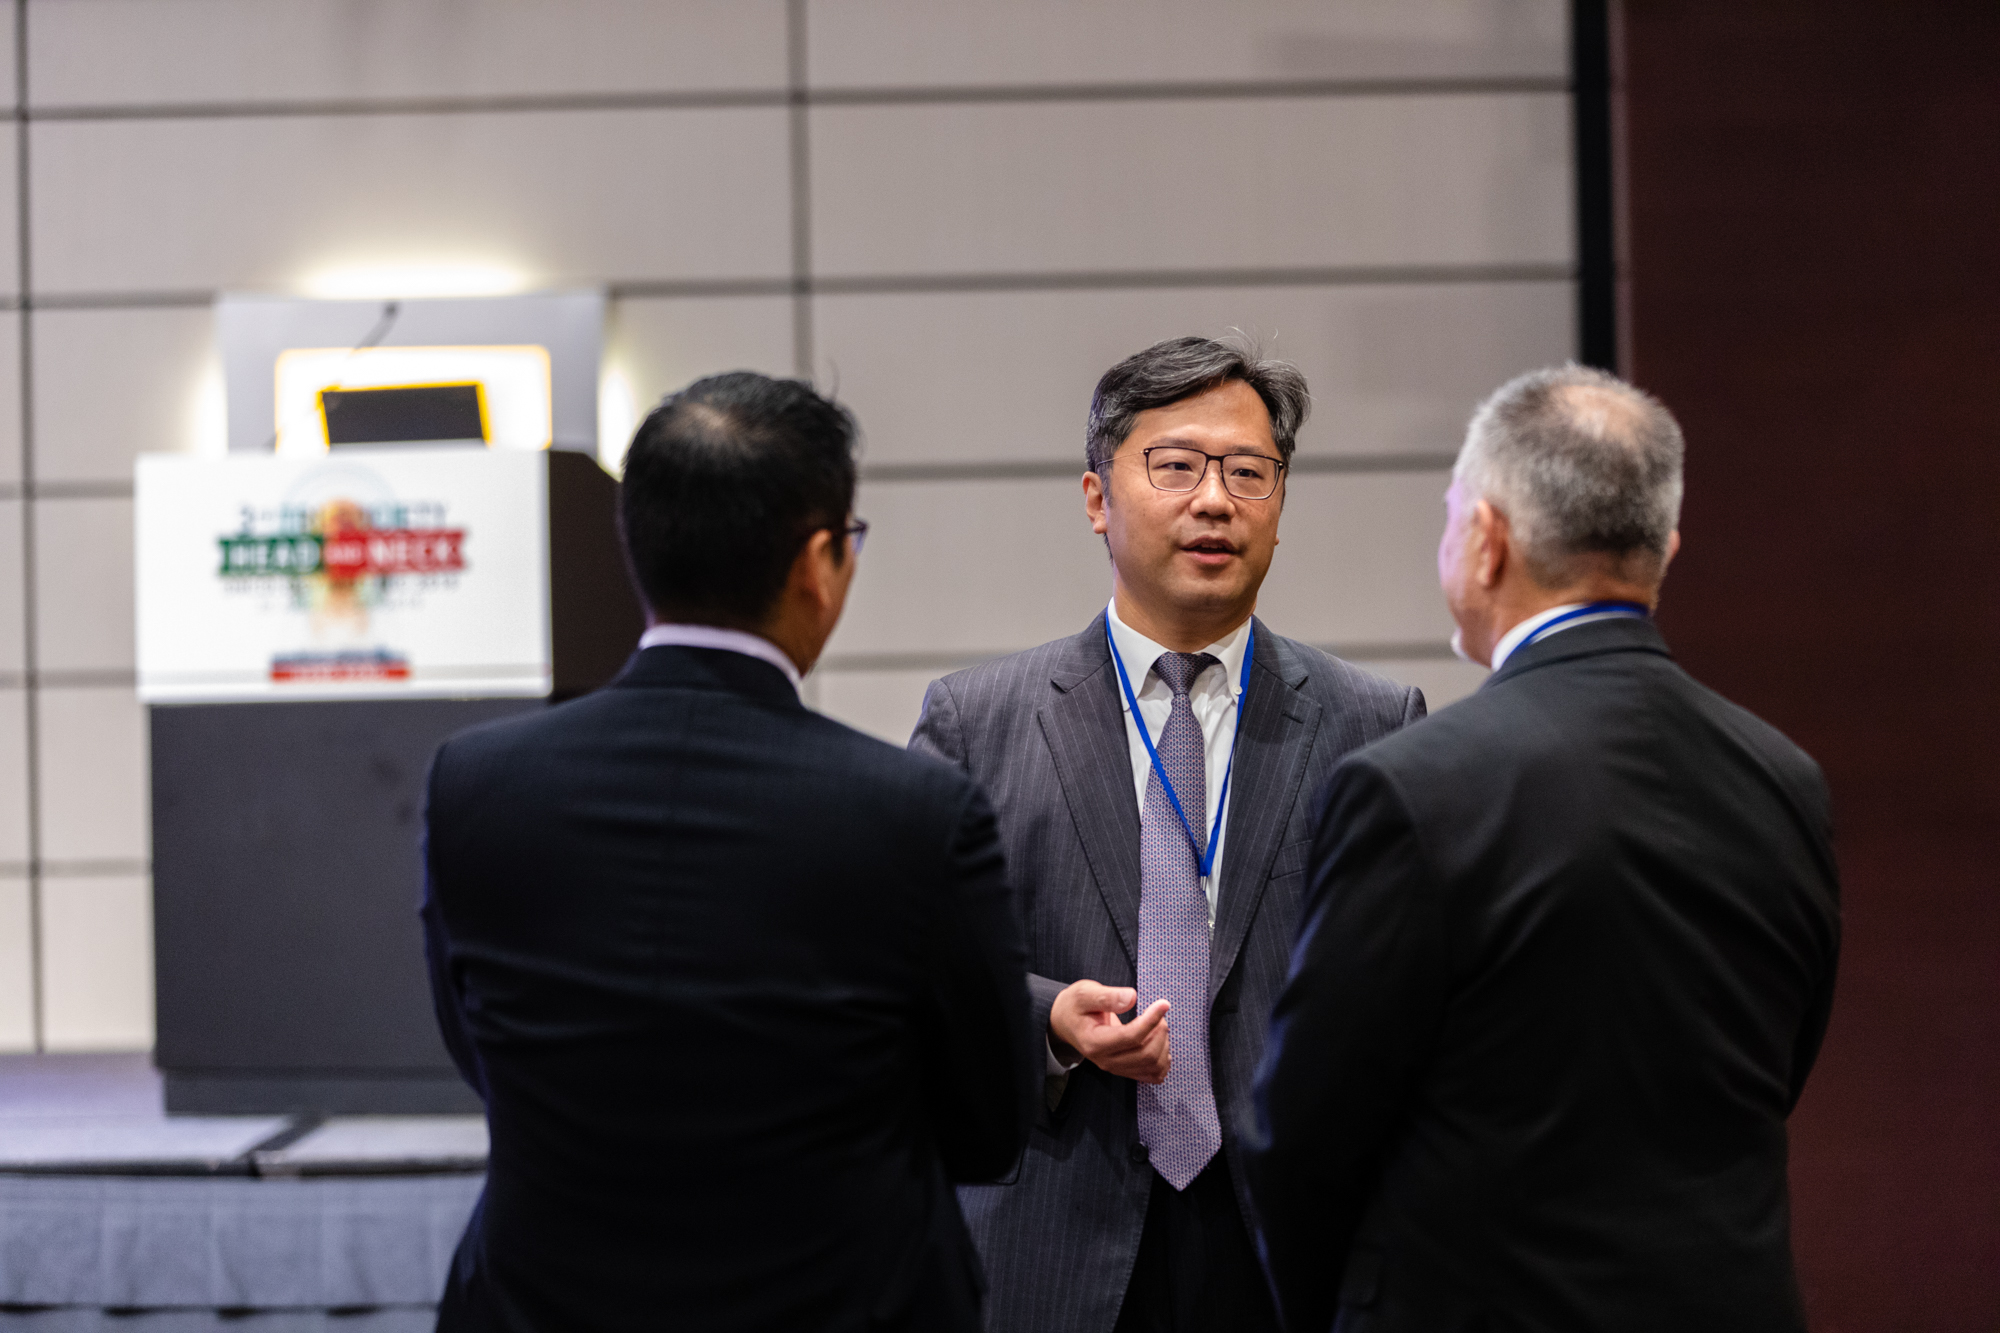 Dr. Jimmy YW Chan, HK Head and Neck Oncology Meeting